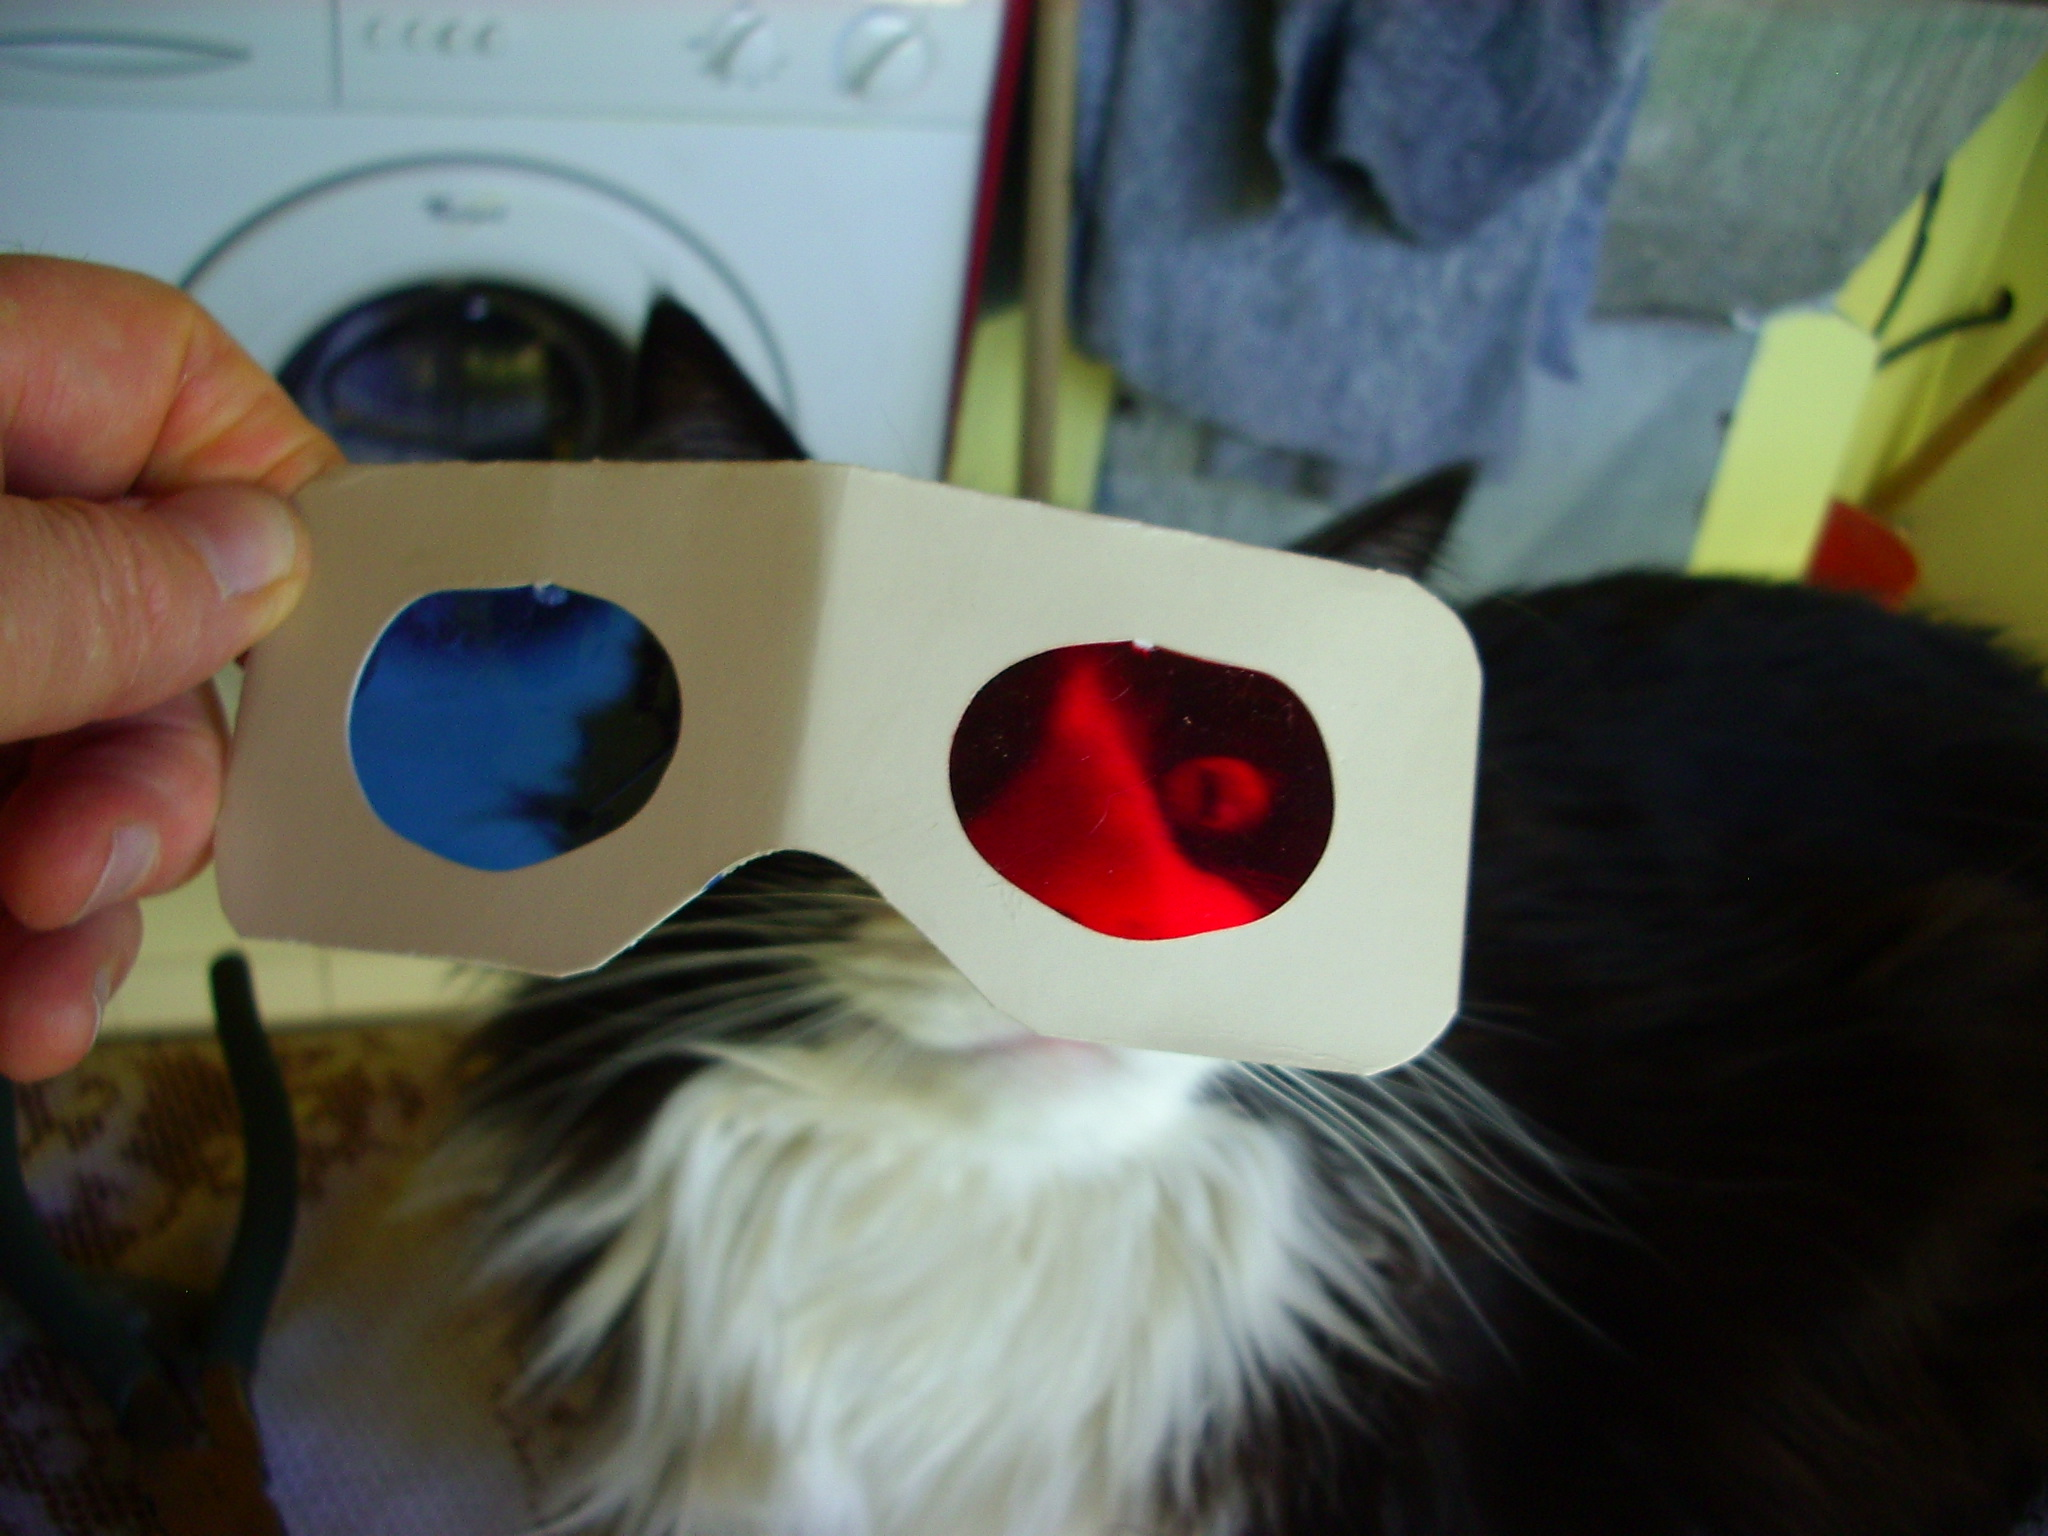 How I maked my red-blue anaglyph eyeglasses